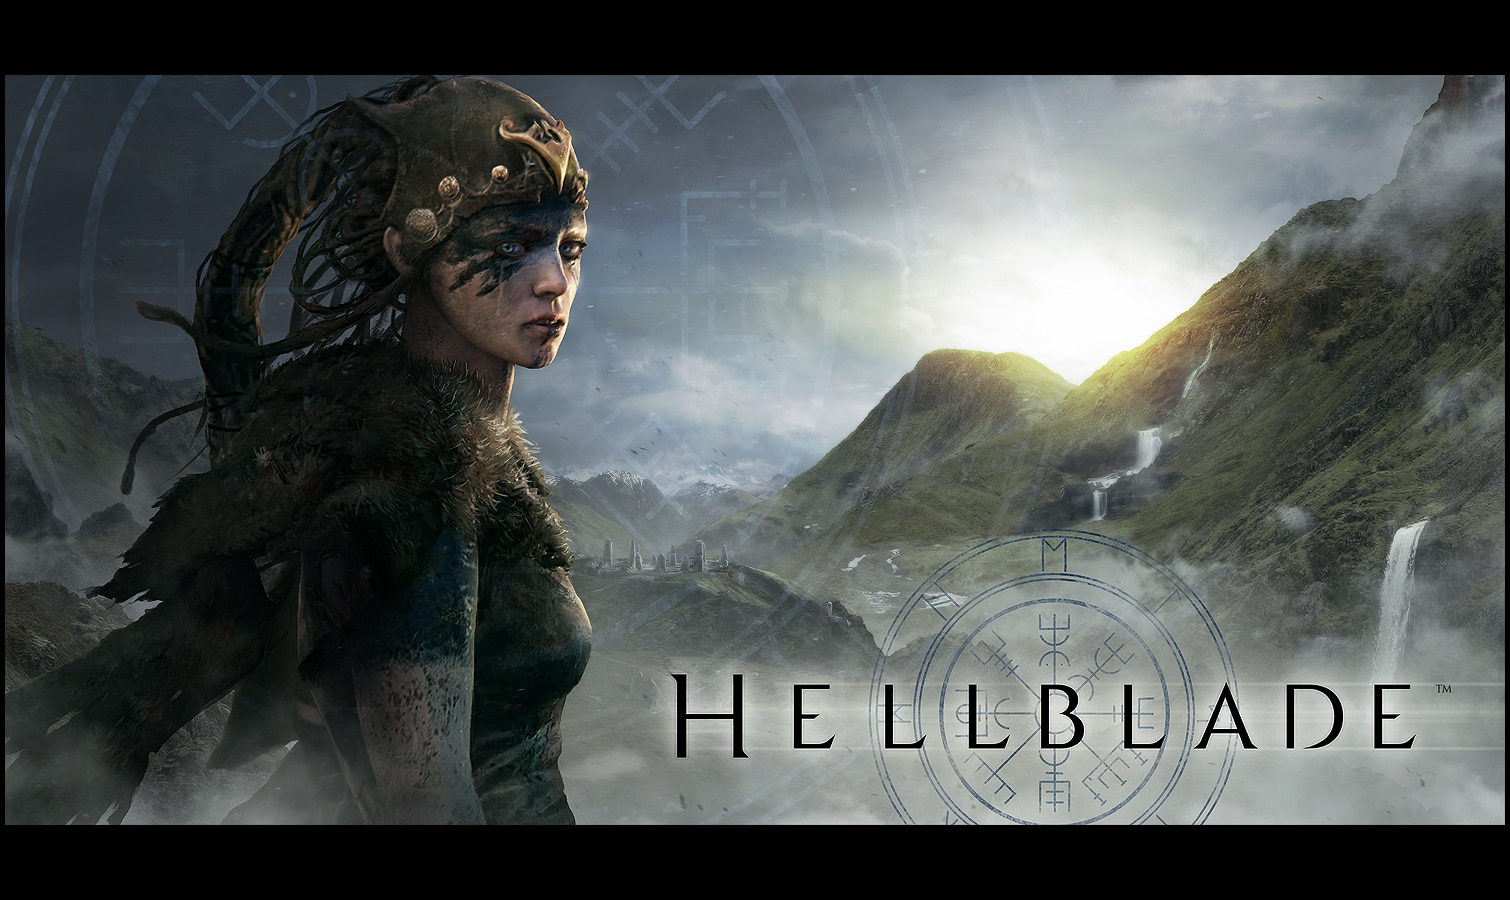 hellblade - Hellblade Dev Diary Talks Getting Into The Mind Of The Mentally Ill